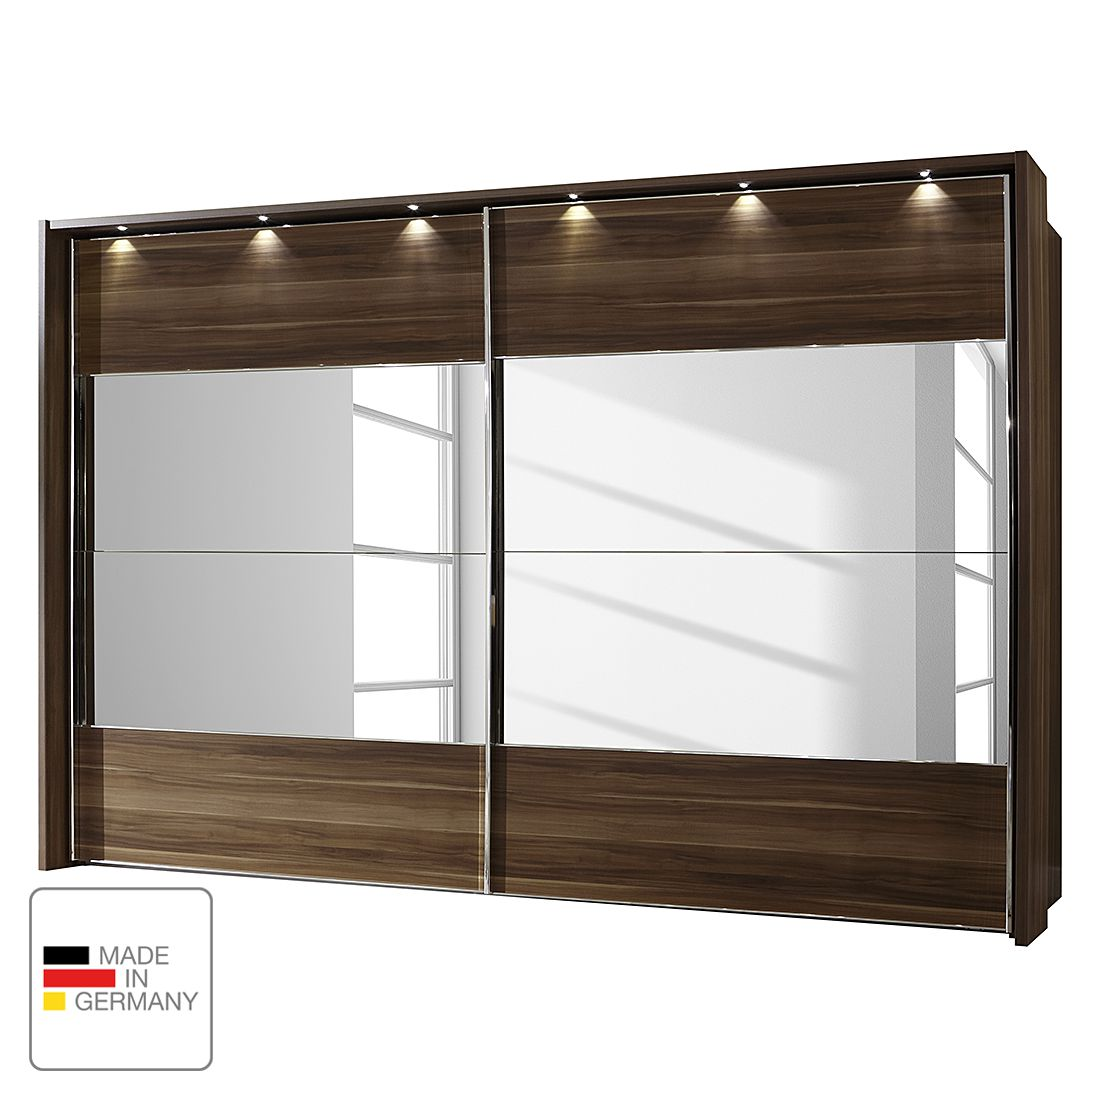 schwebet renschrank monza walnuss dekor led beleuchtung 250 cm 3 t rig 216 cm mit. Black Bedroom Furniture Sets. Home Design Ideas